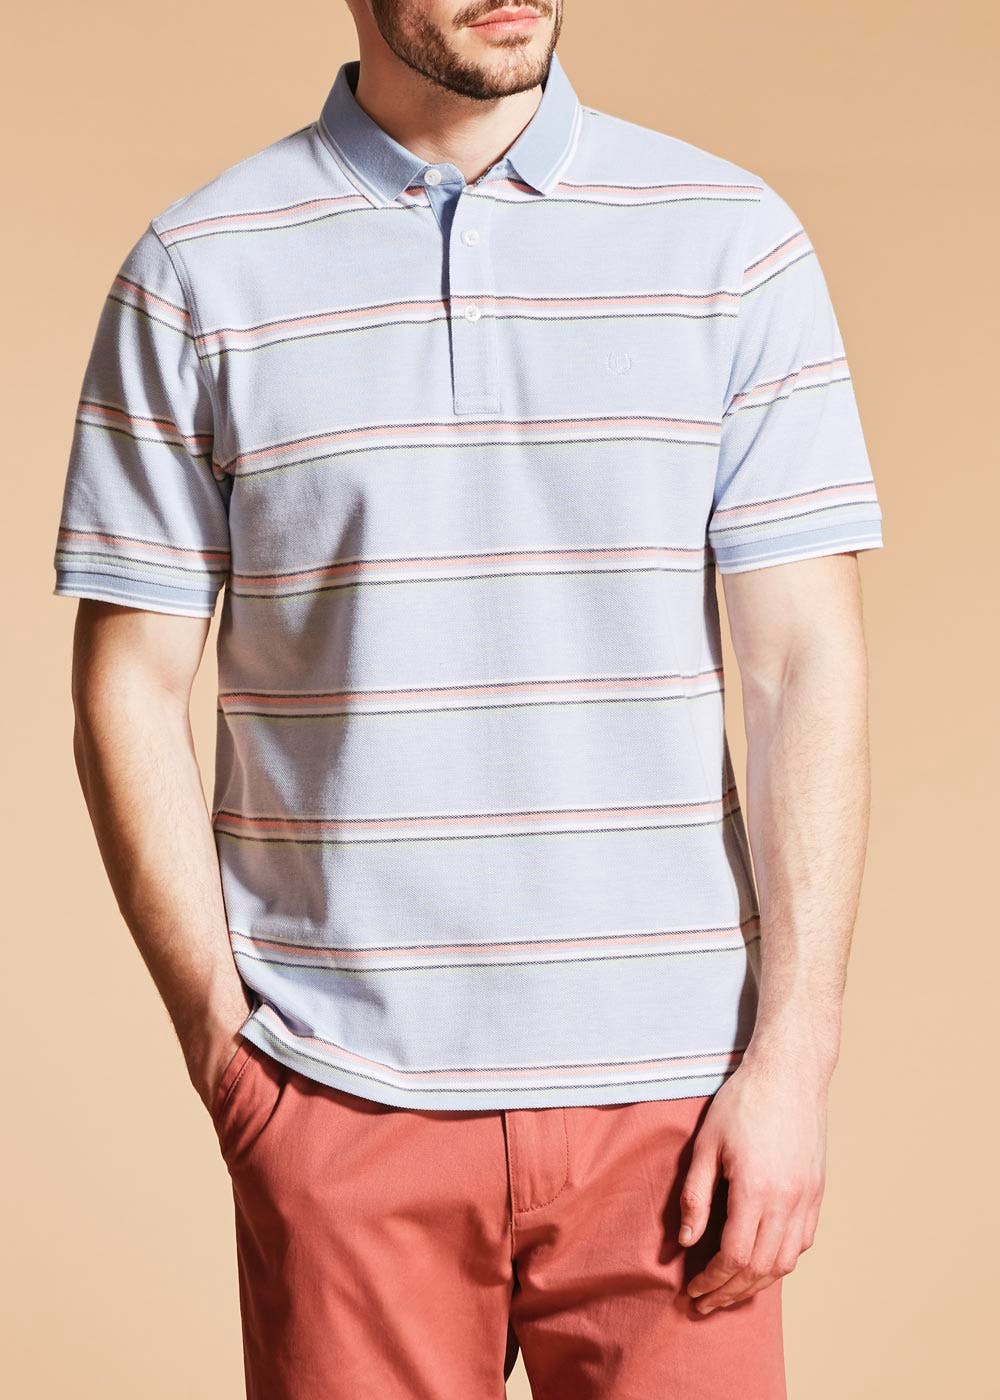 polo in the city perth mens red and white striped polo shirt